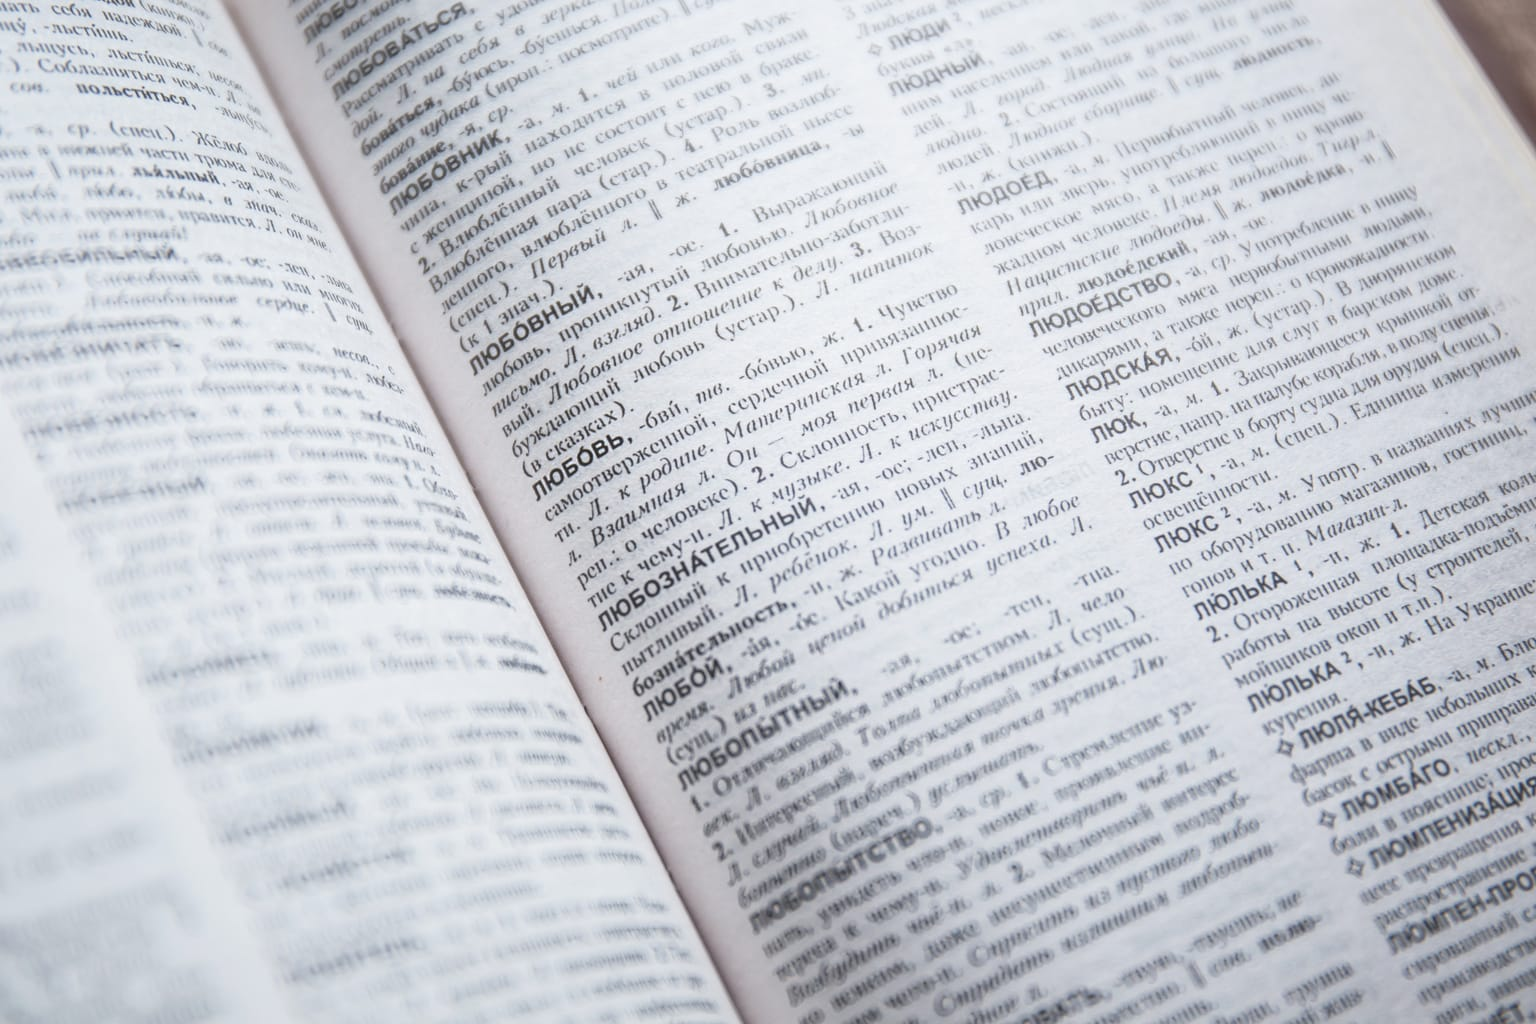 dictionary-full-of-a-foreign-language